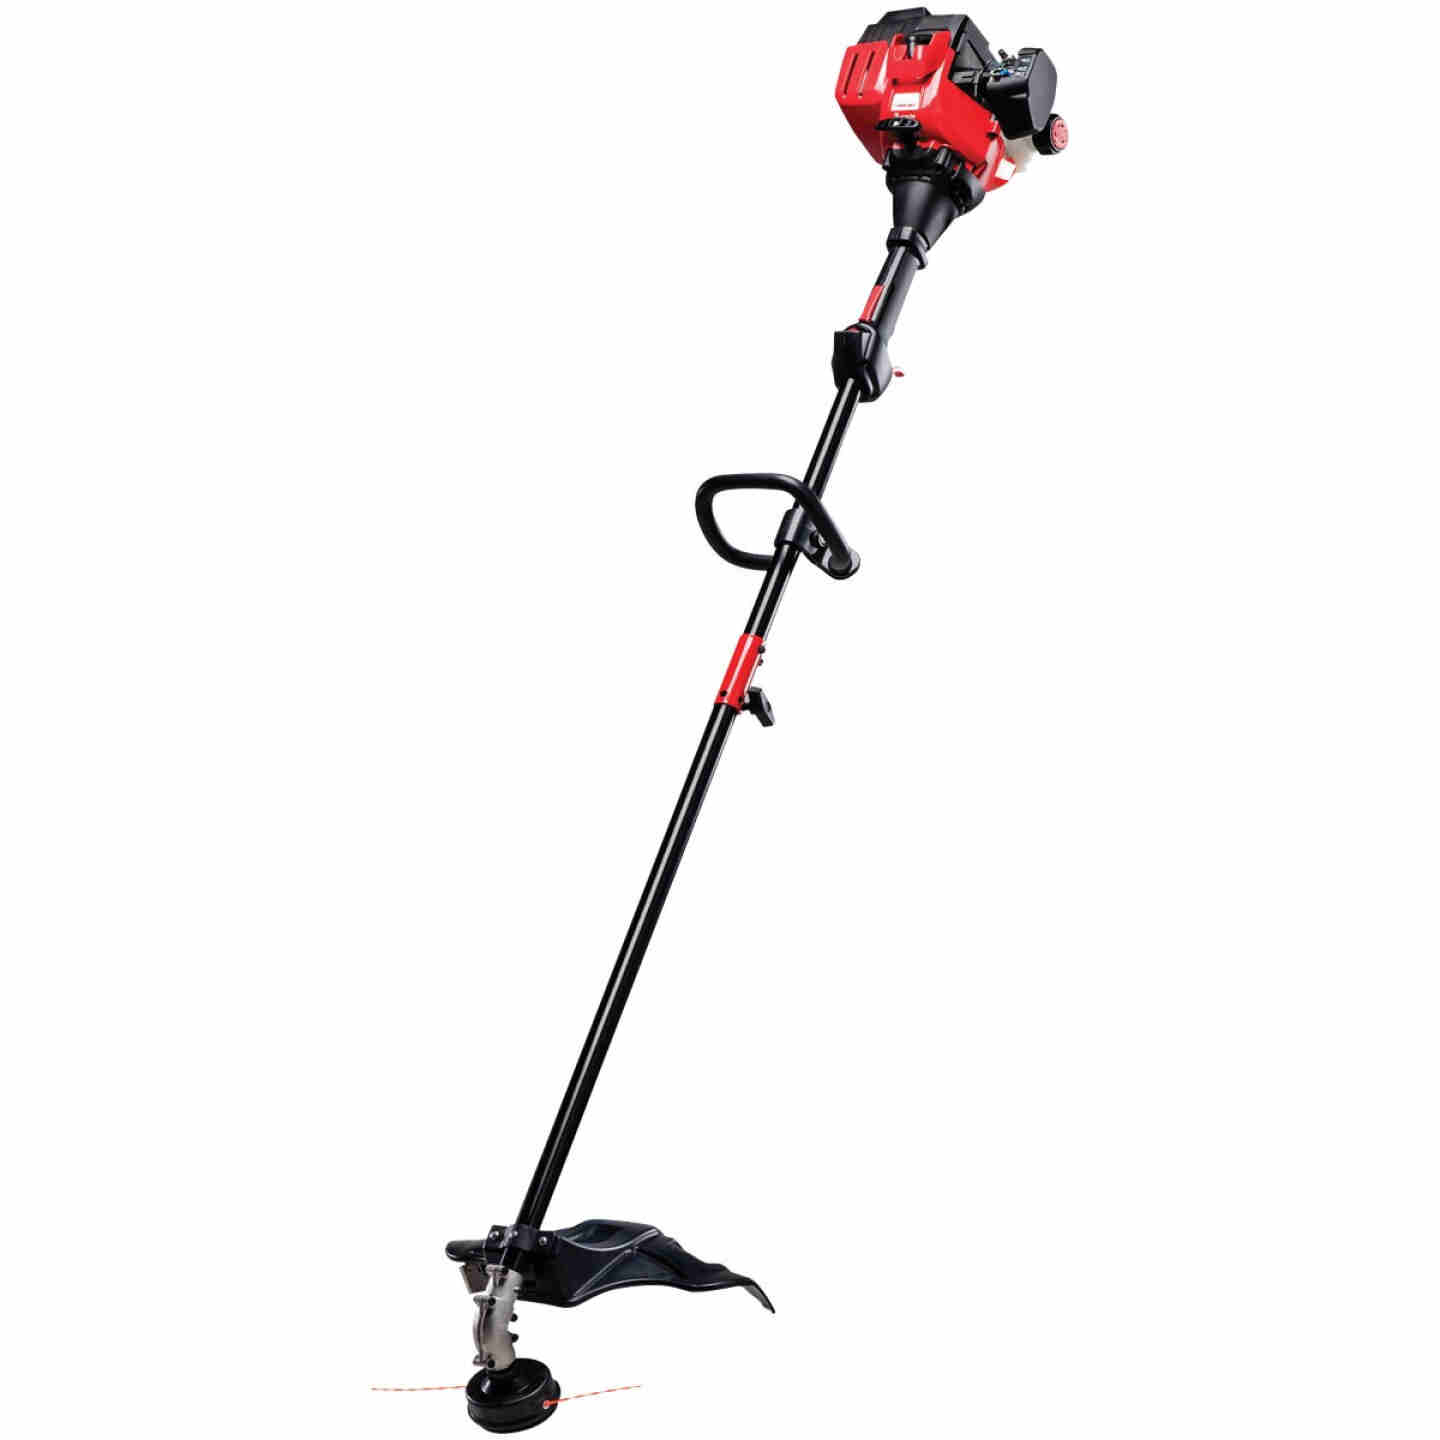 Troy-Bilt TB252S 25cc 2-Cycle 17 In. Straight Shaft Gas Trimmer Image 3